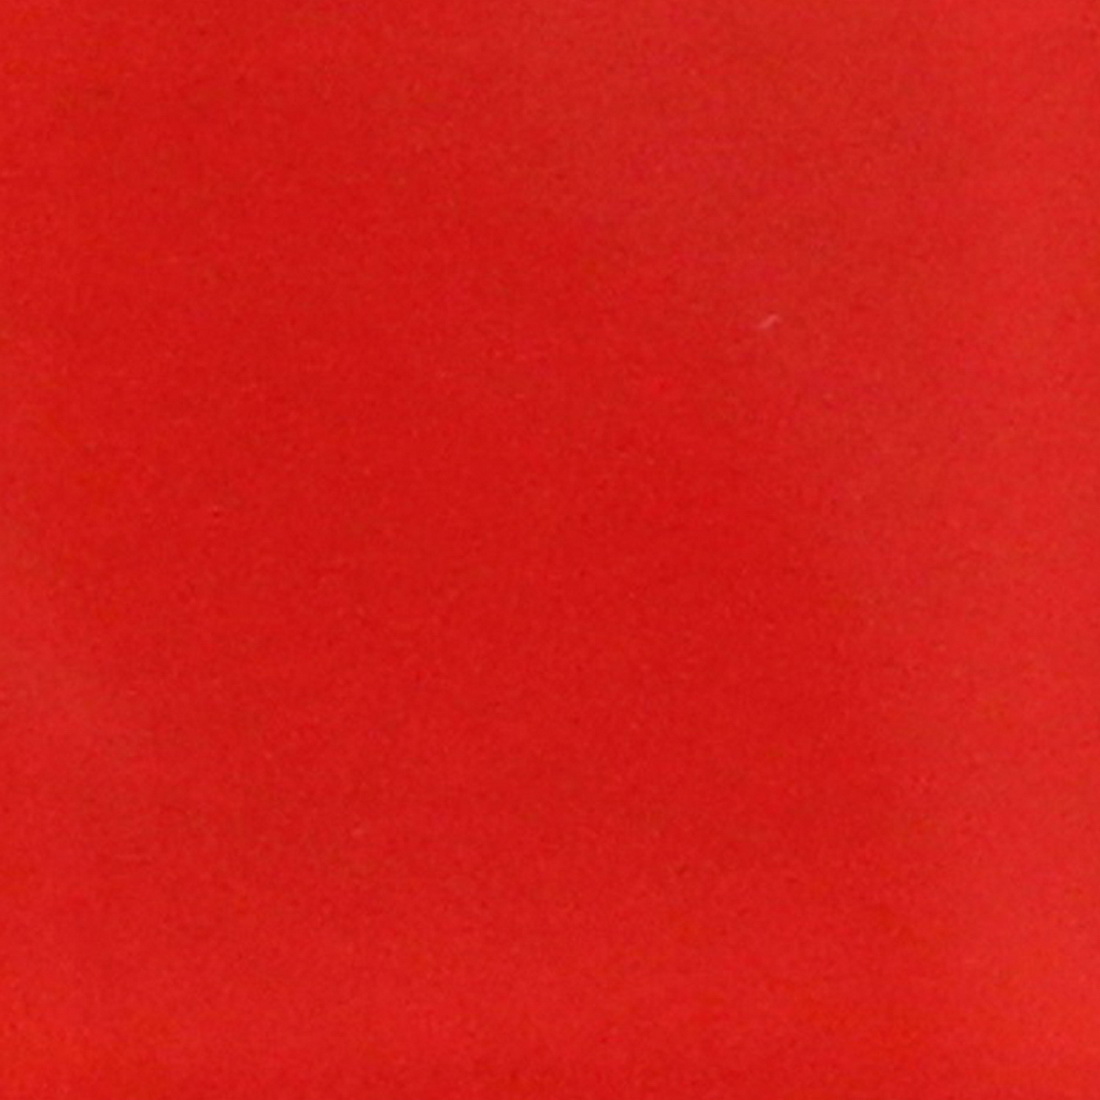 Splashback 900 x 750 mm Glass Vivid Red 9X75SPLASHVR